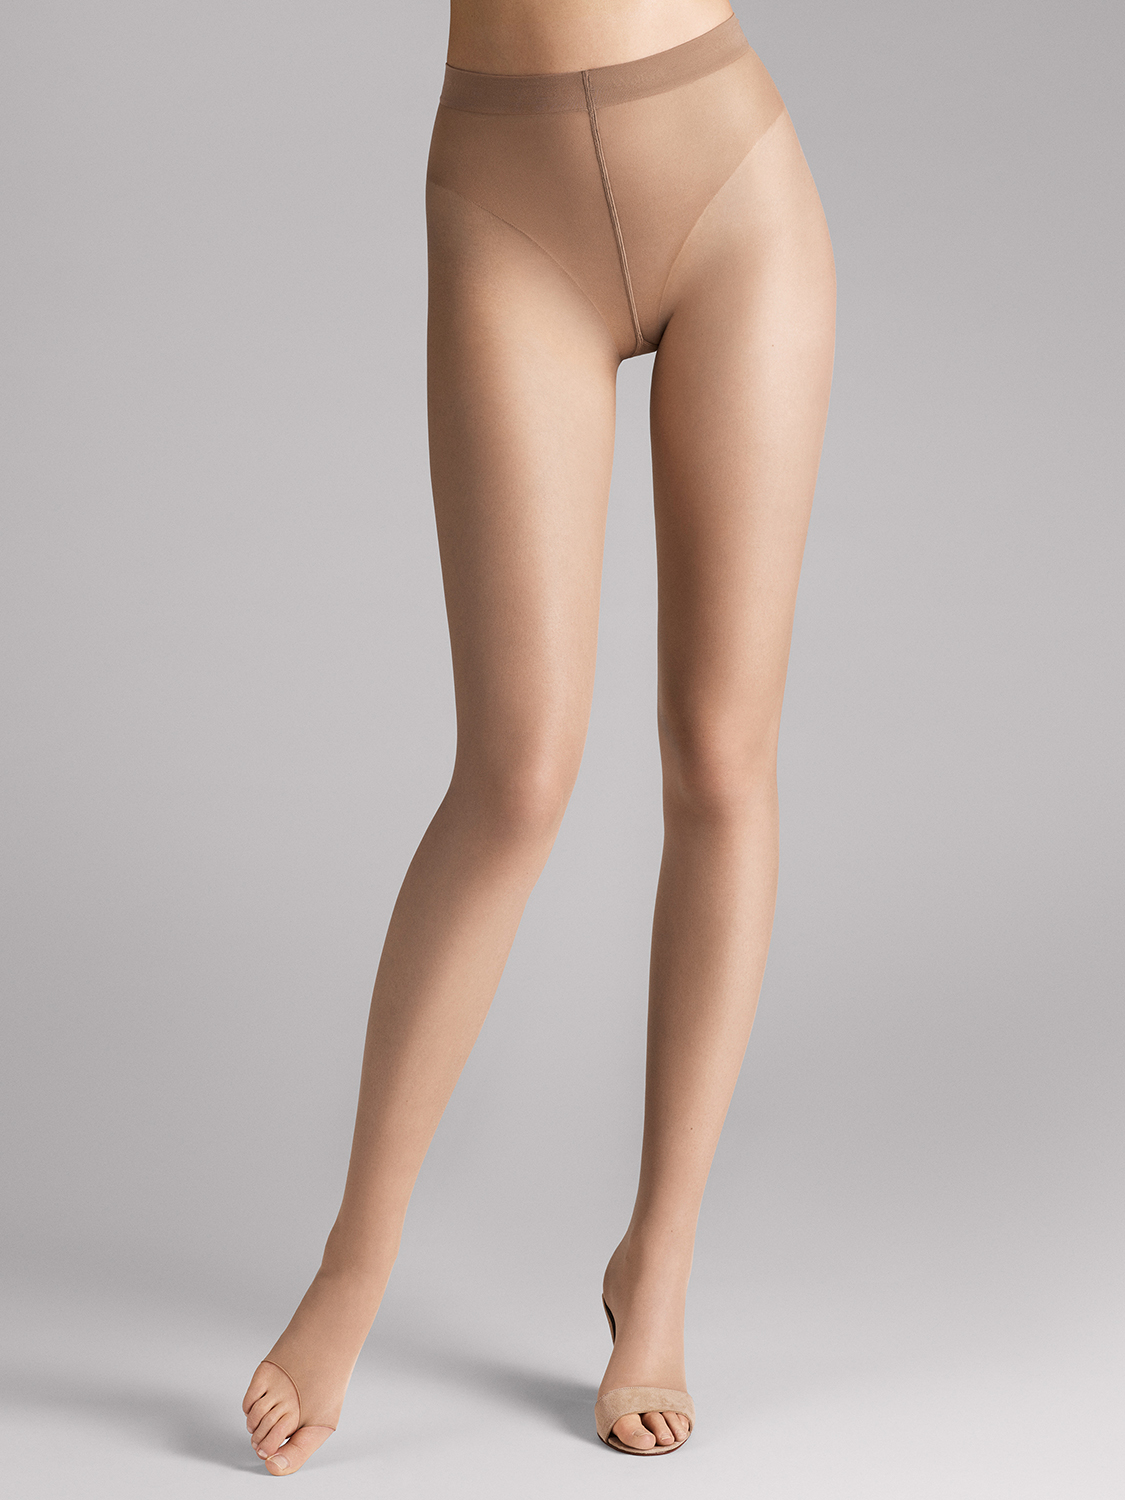 Колготы luxe 9 toeless tights фото